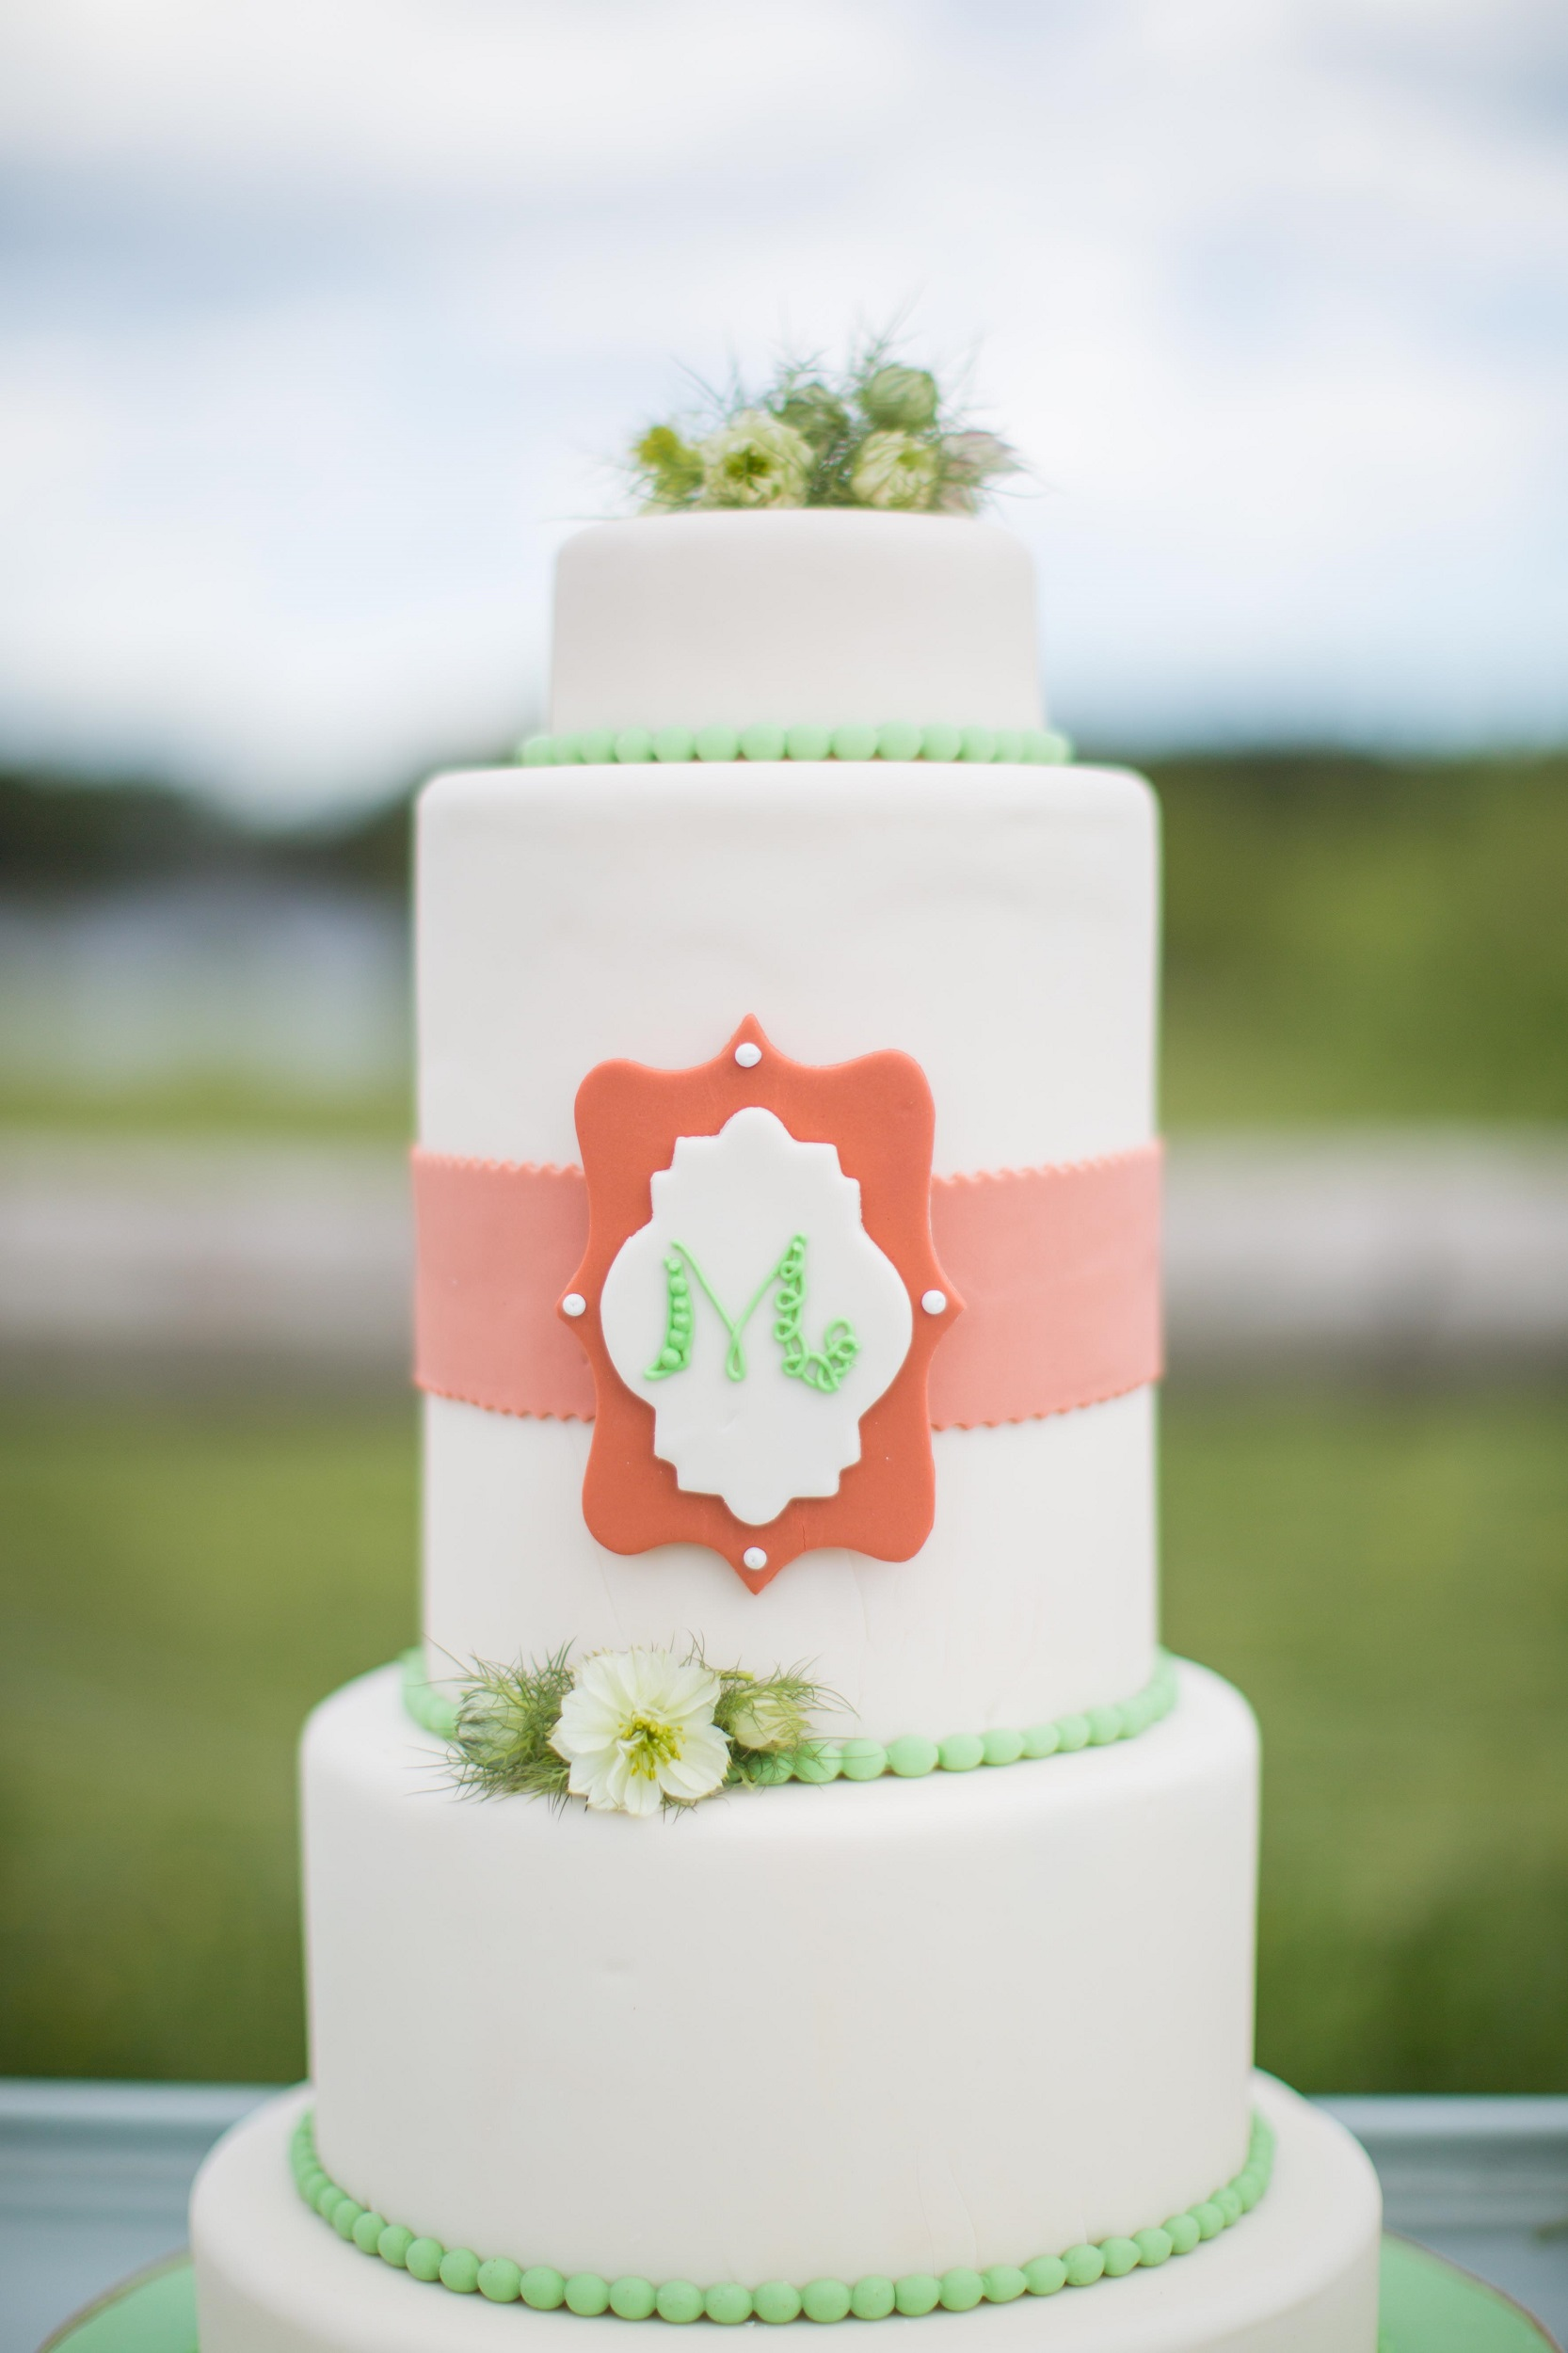 Vendor Spotlight: Cakes for All Seasons